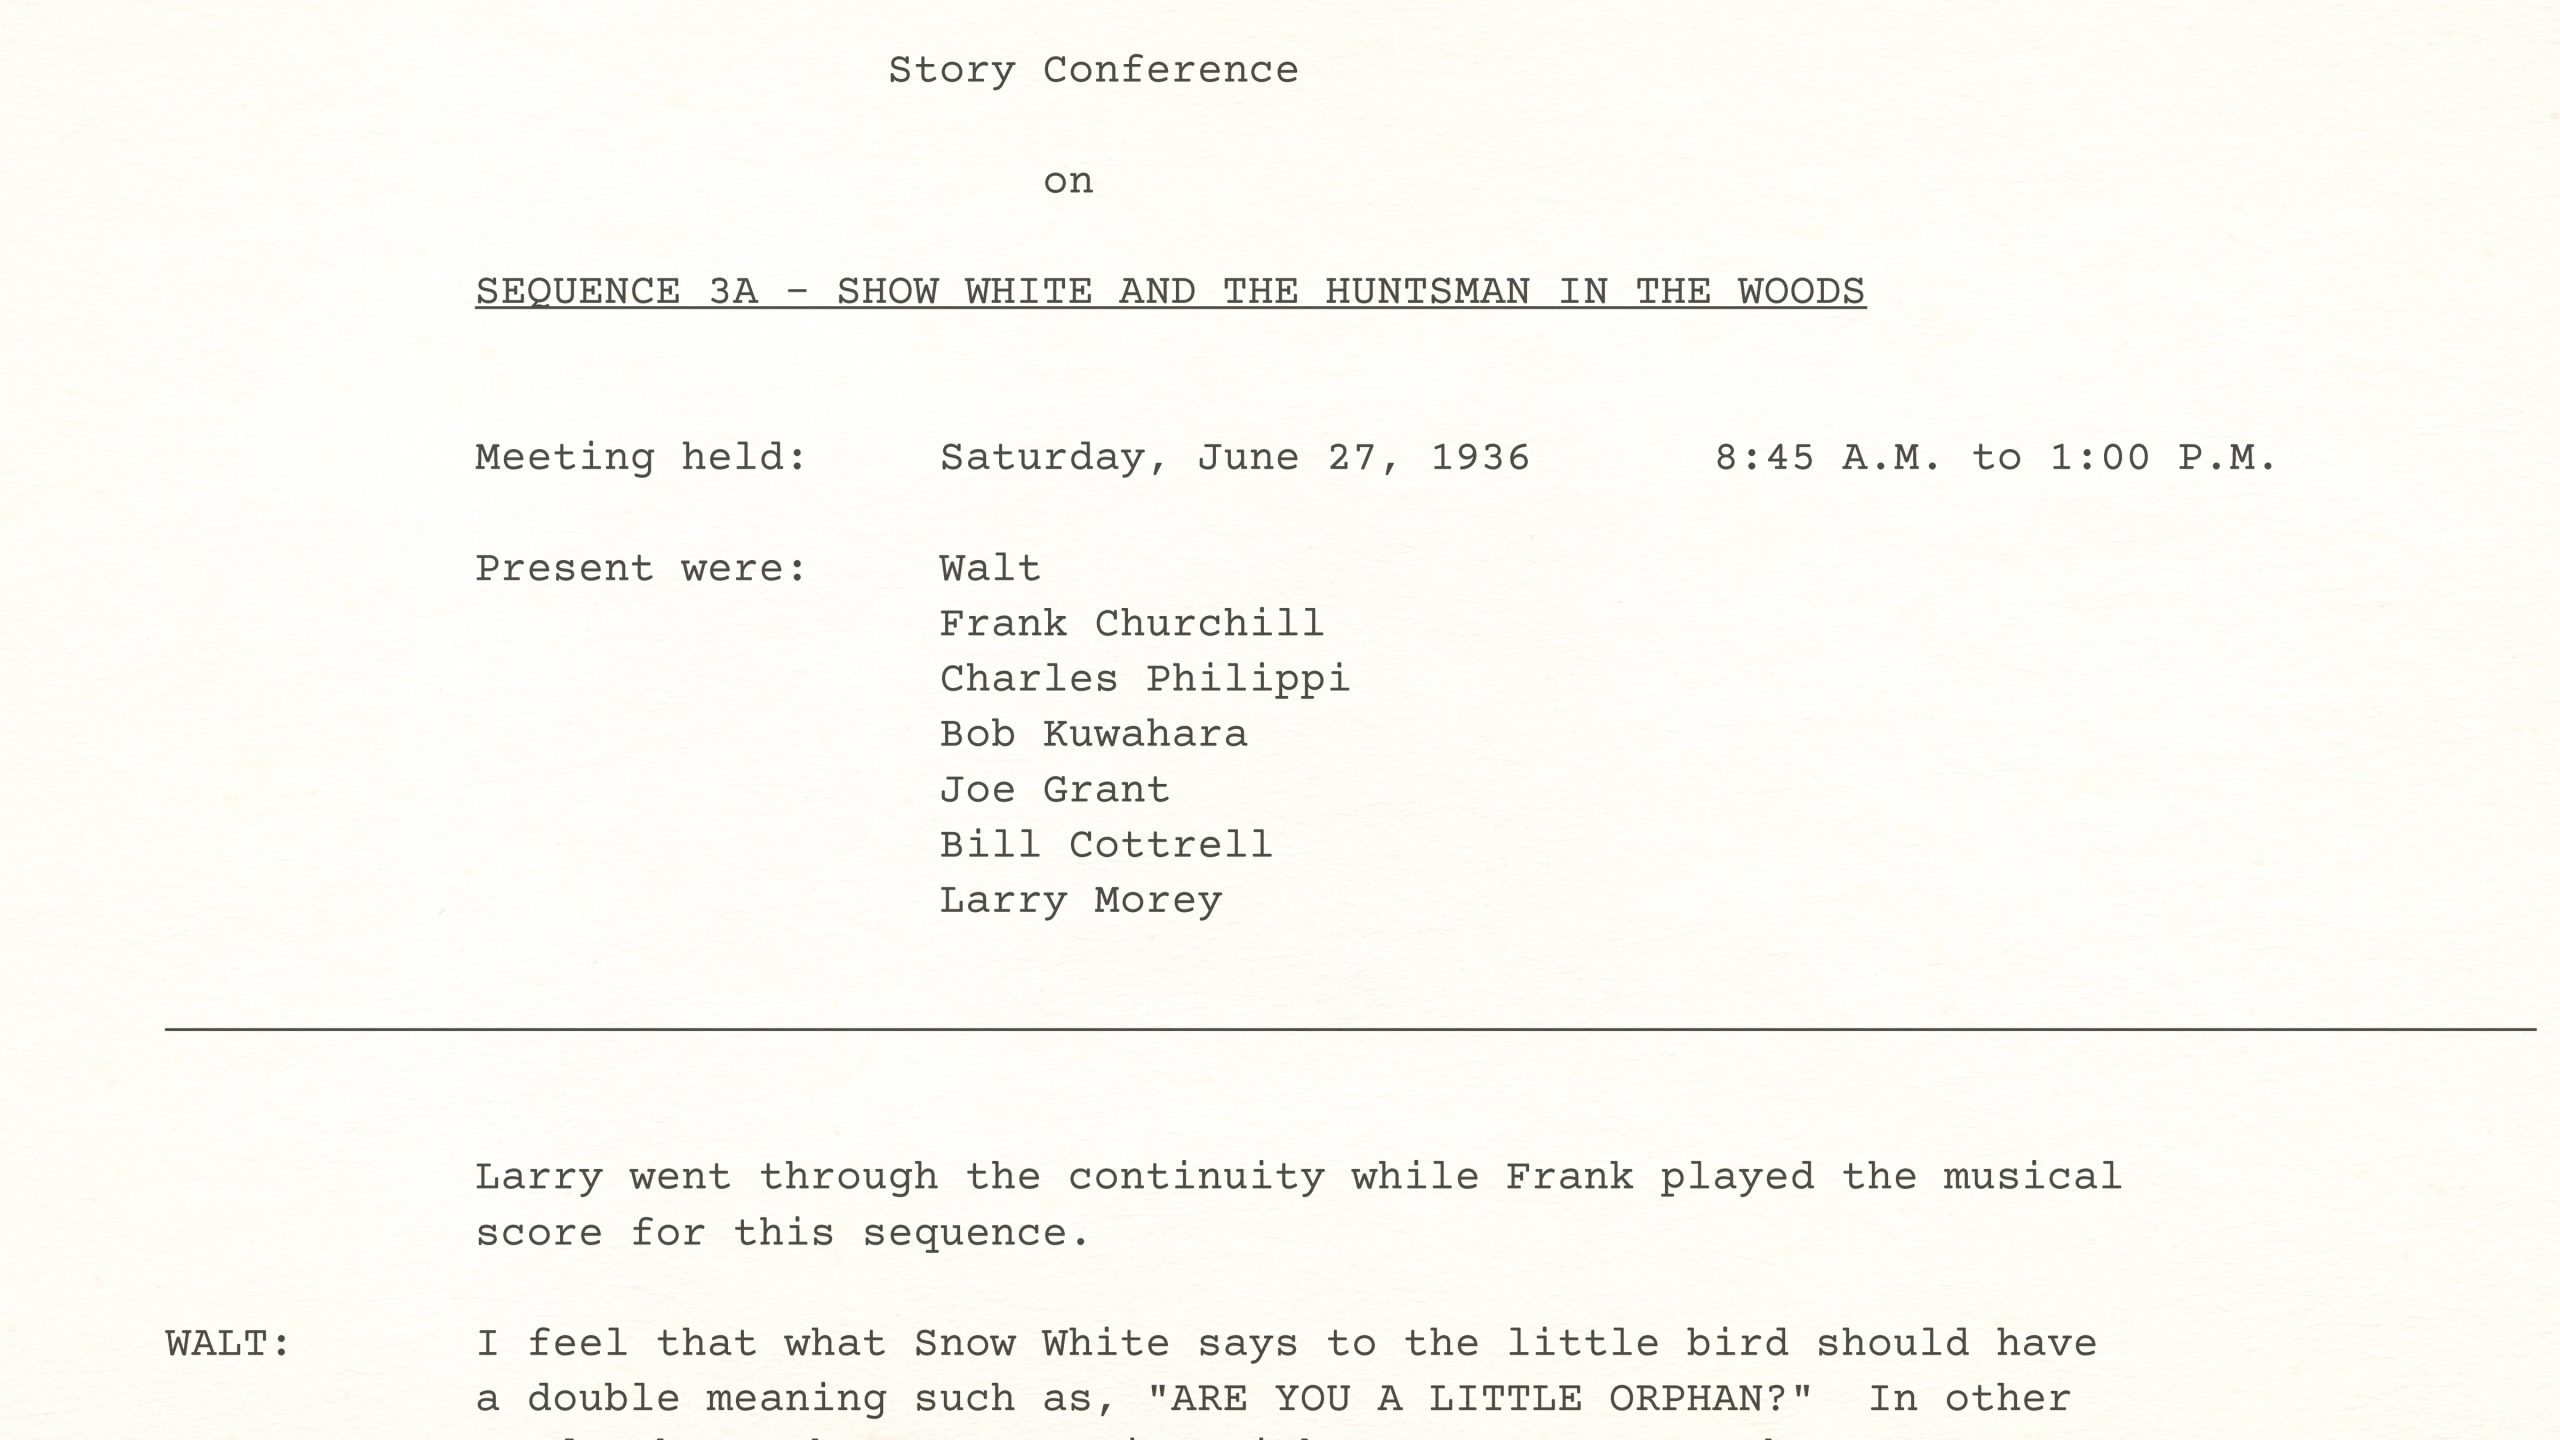 Walt Disney Story Conference on Snow White's HUNTSMAN KNIFE SEQUENCE, June 27th, 1936